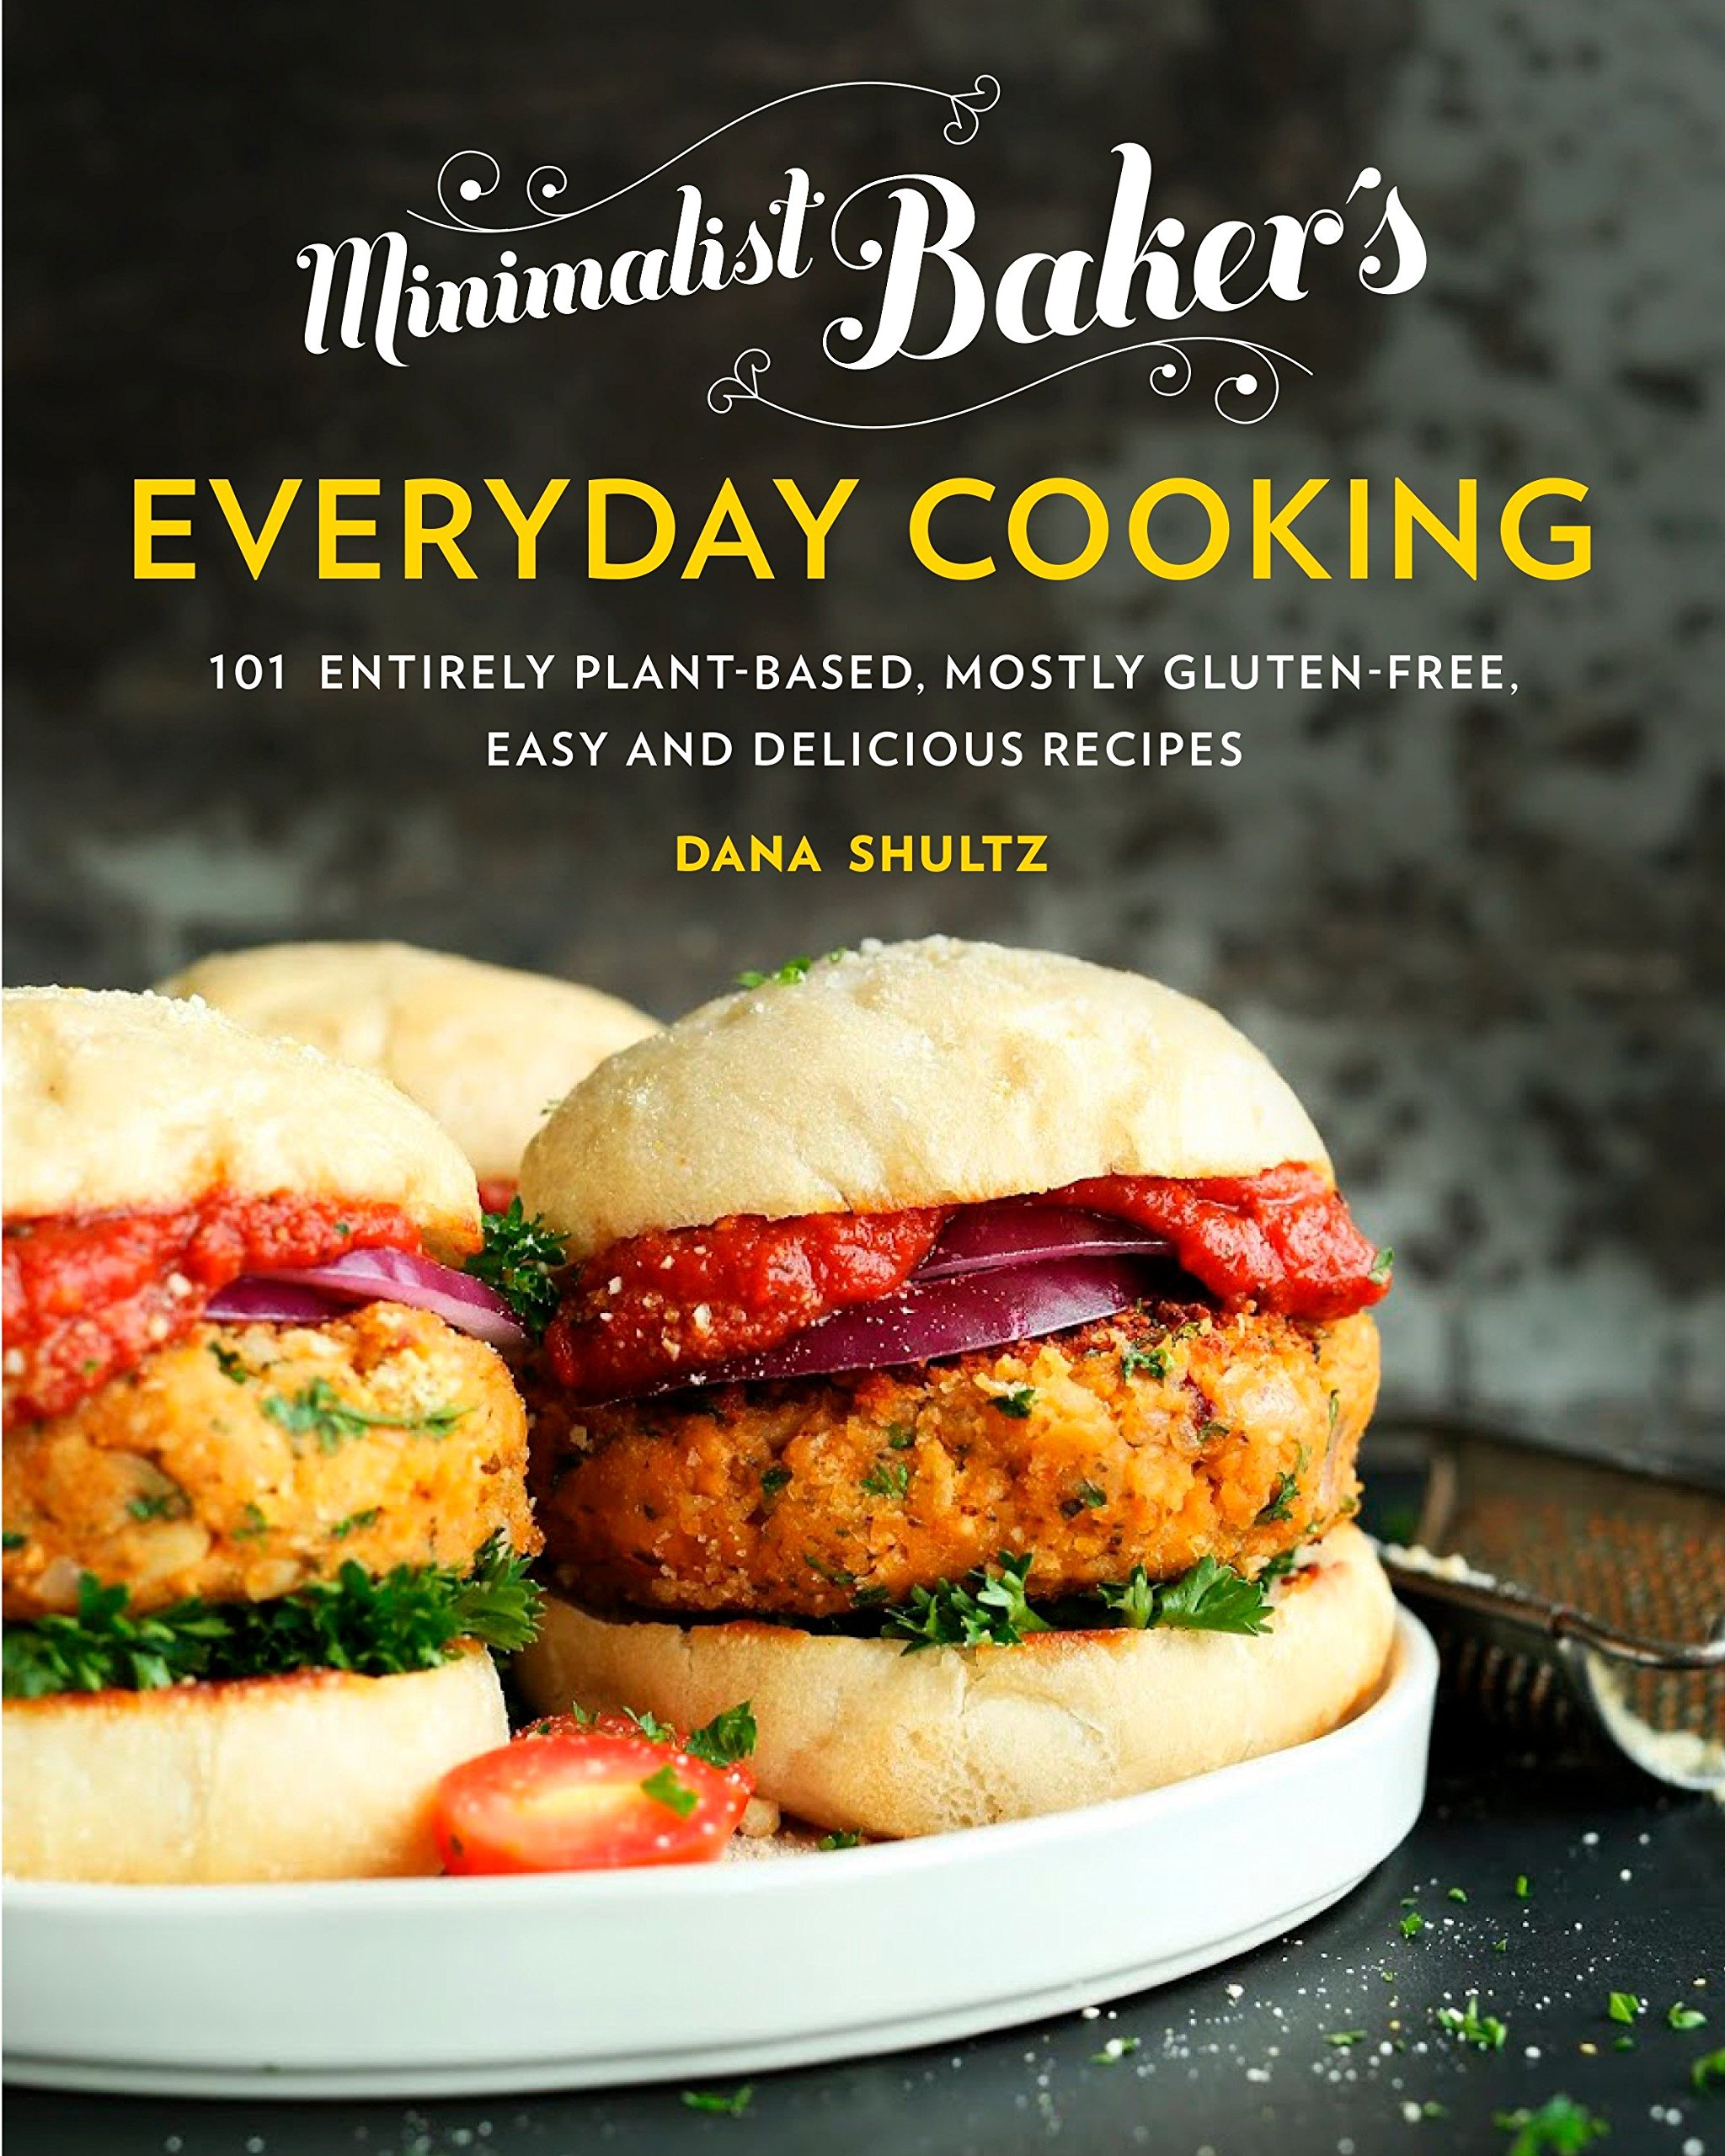 Minimalist Baker's Everyday Cooking: 101 Entirely Plant-based, Mostly Gluten-Free, Easy and Delicious Recipes by TURNAROUND PUBLISHER SERVICES